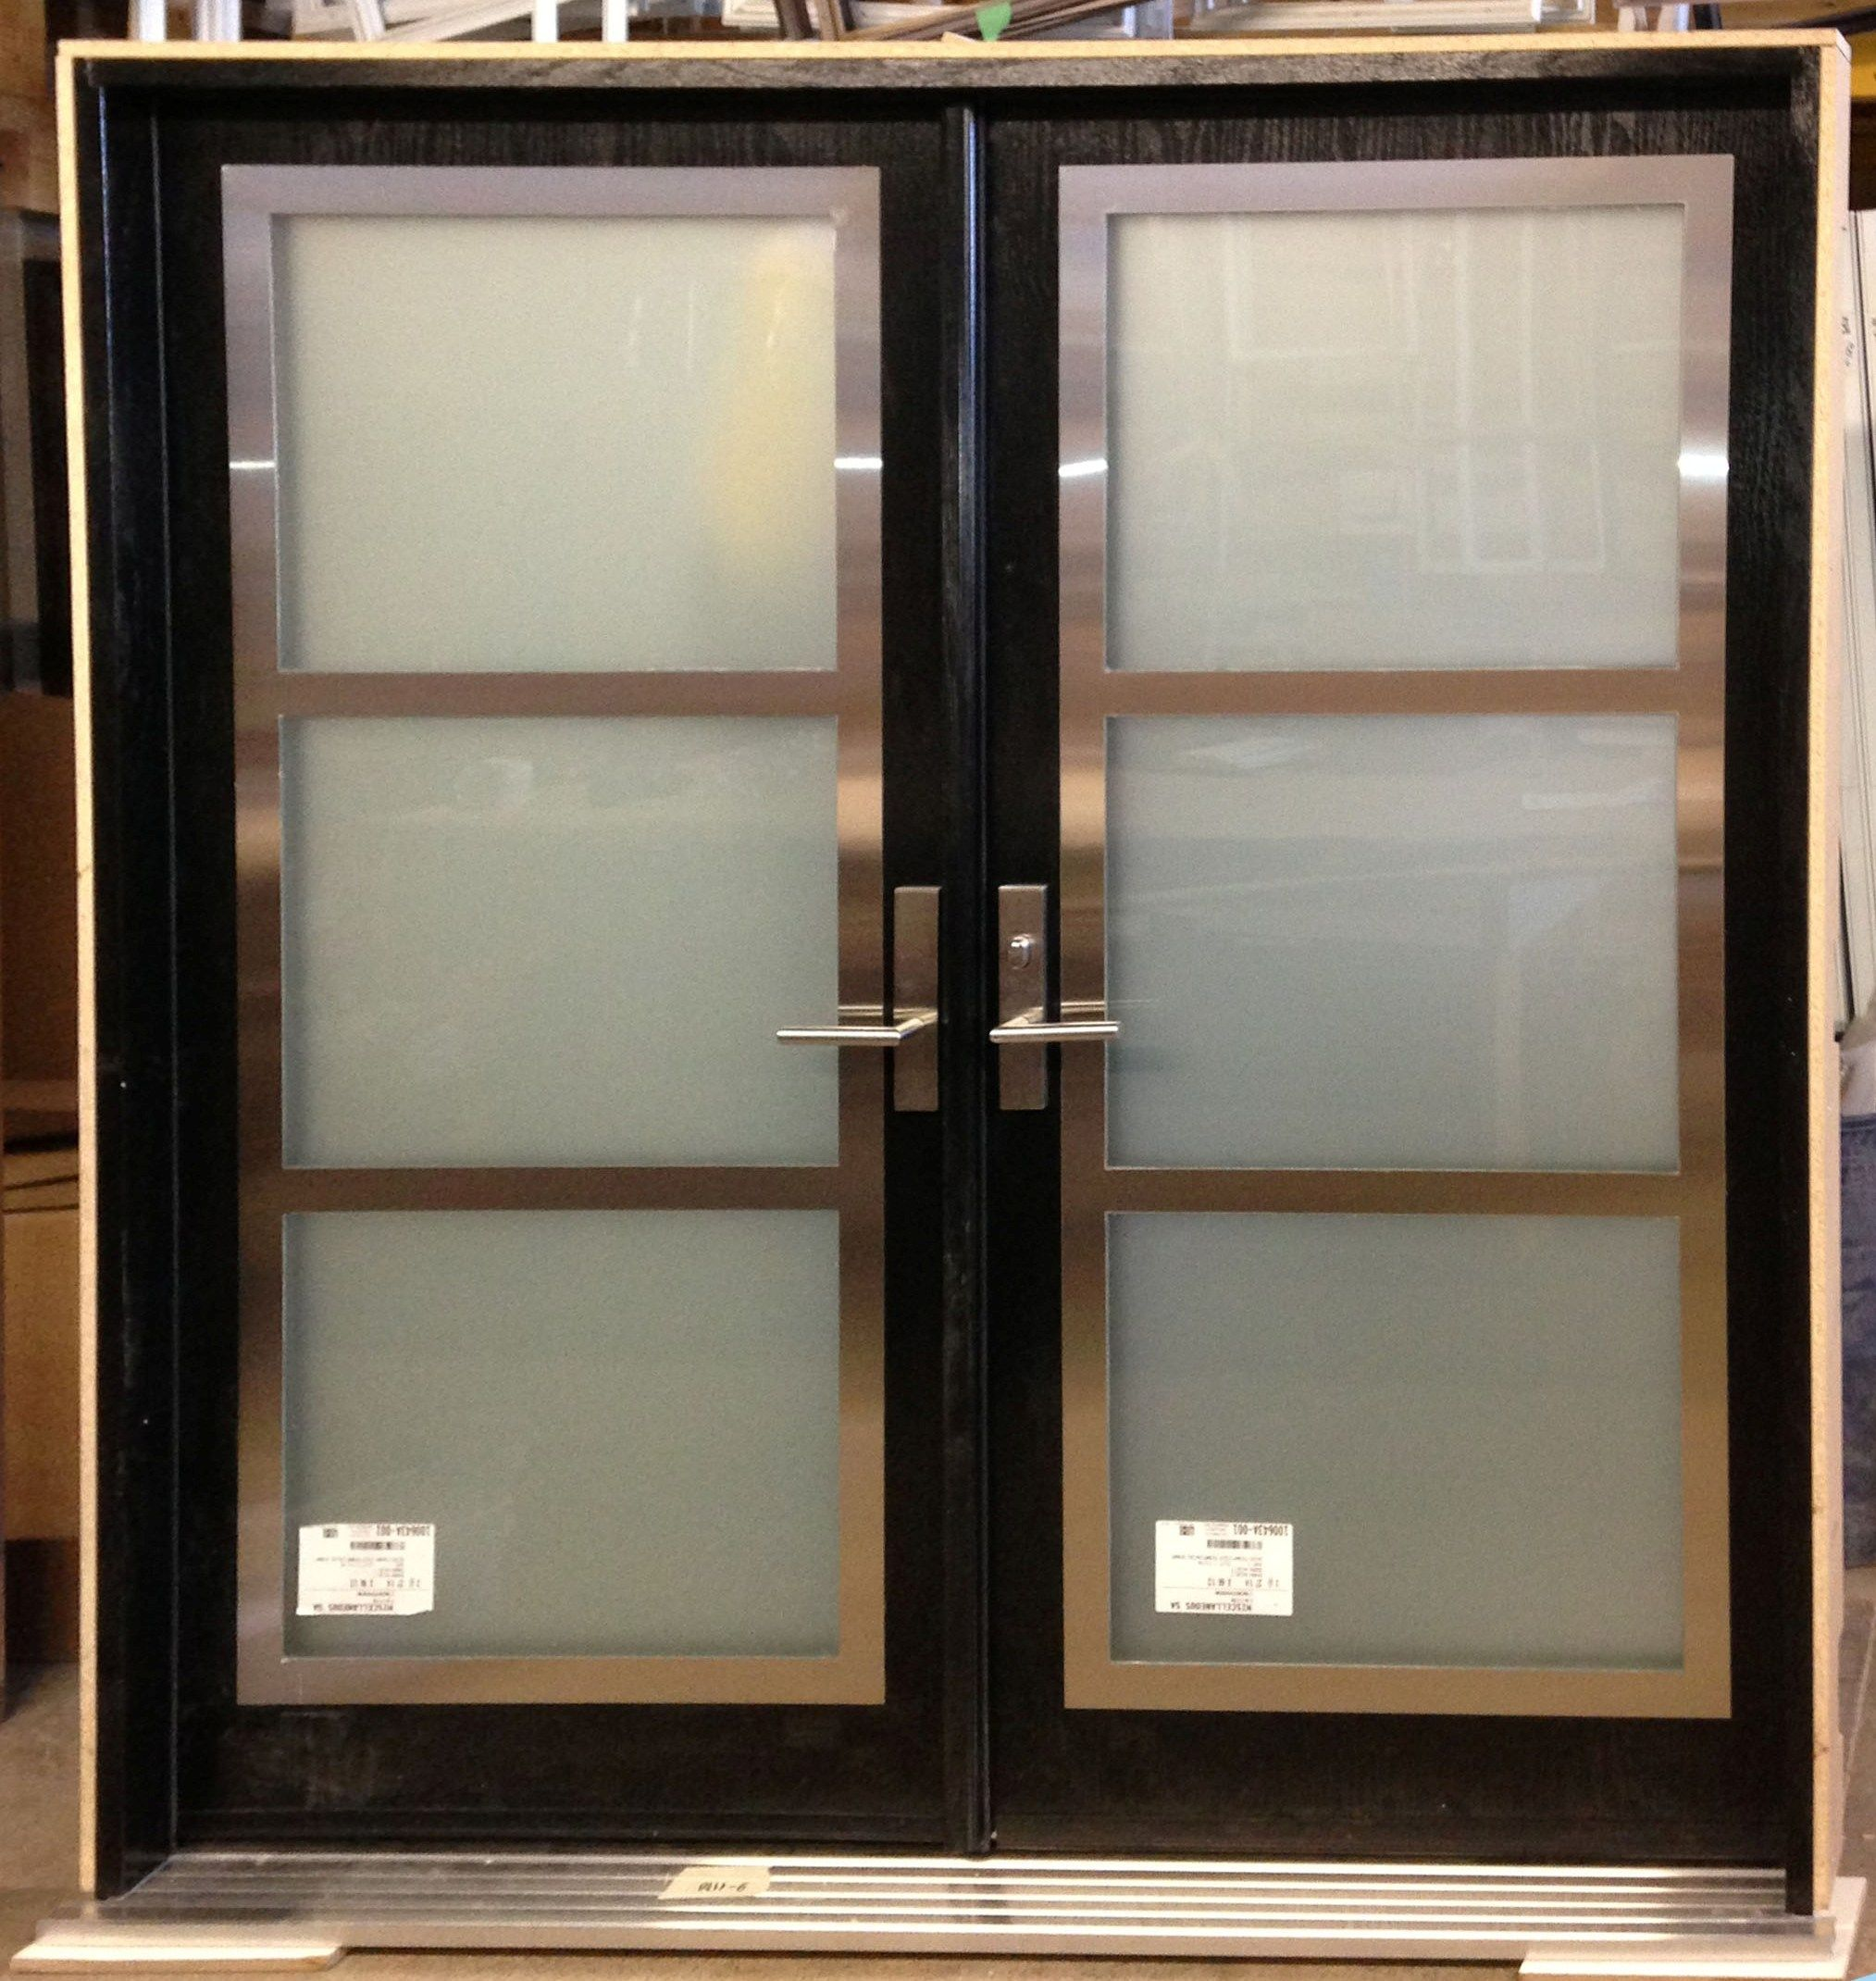 Double entry door with stainless steel frame on top of for Glass door frame